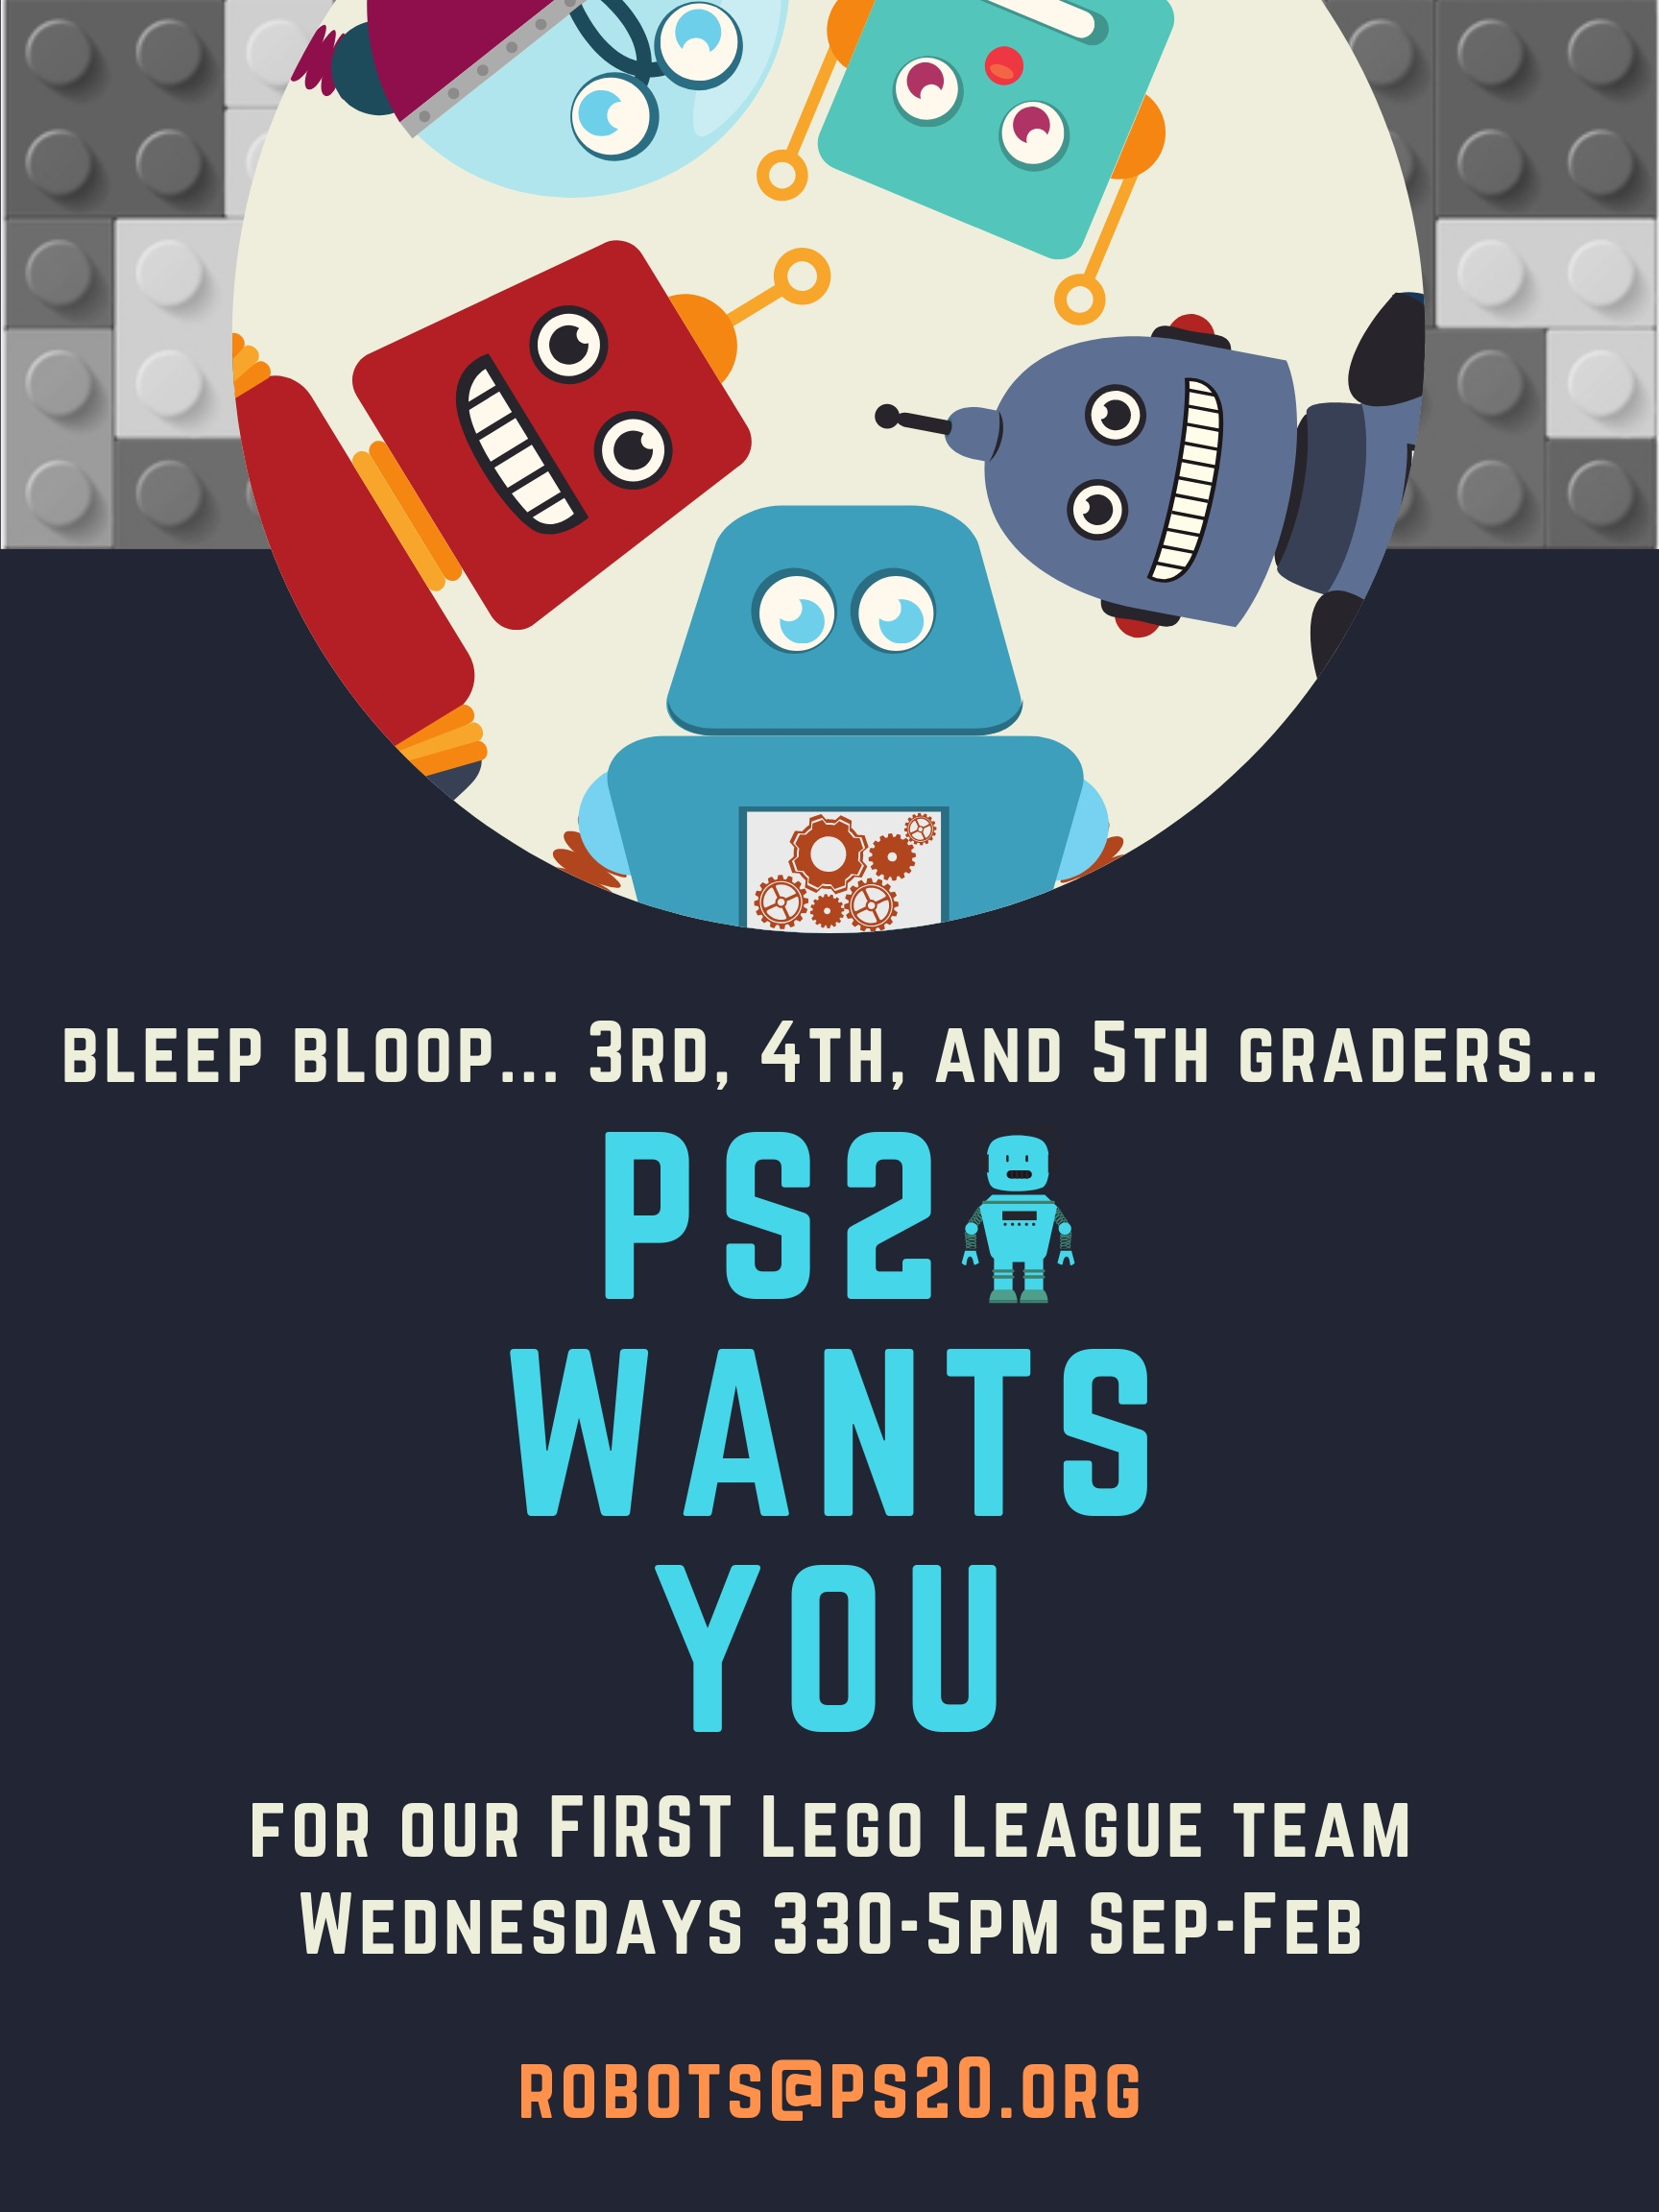 Lego+League+team.jpg